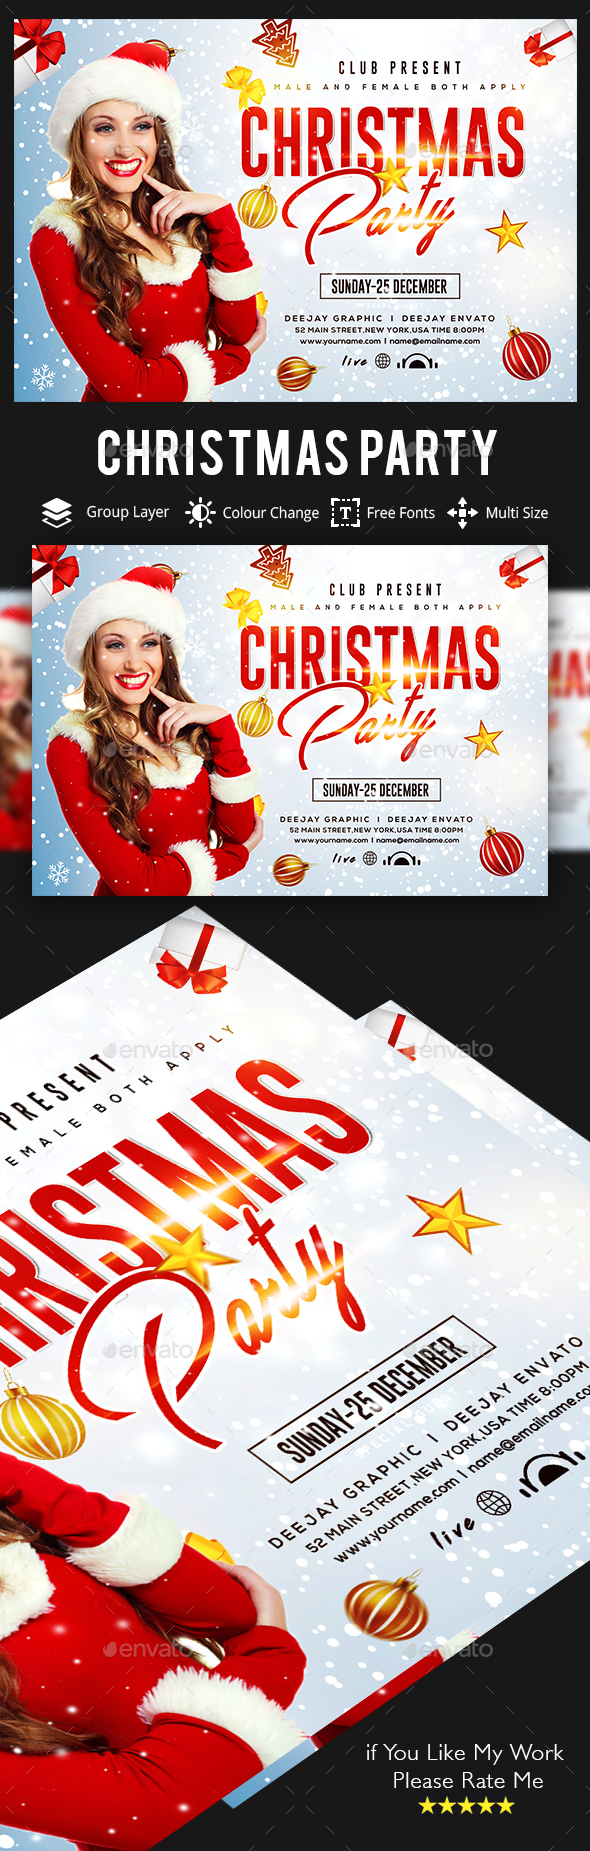 Christmas - Events Flyers